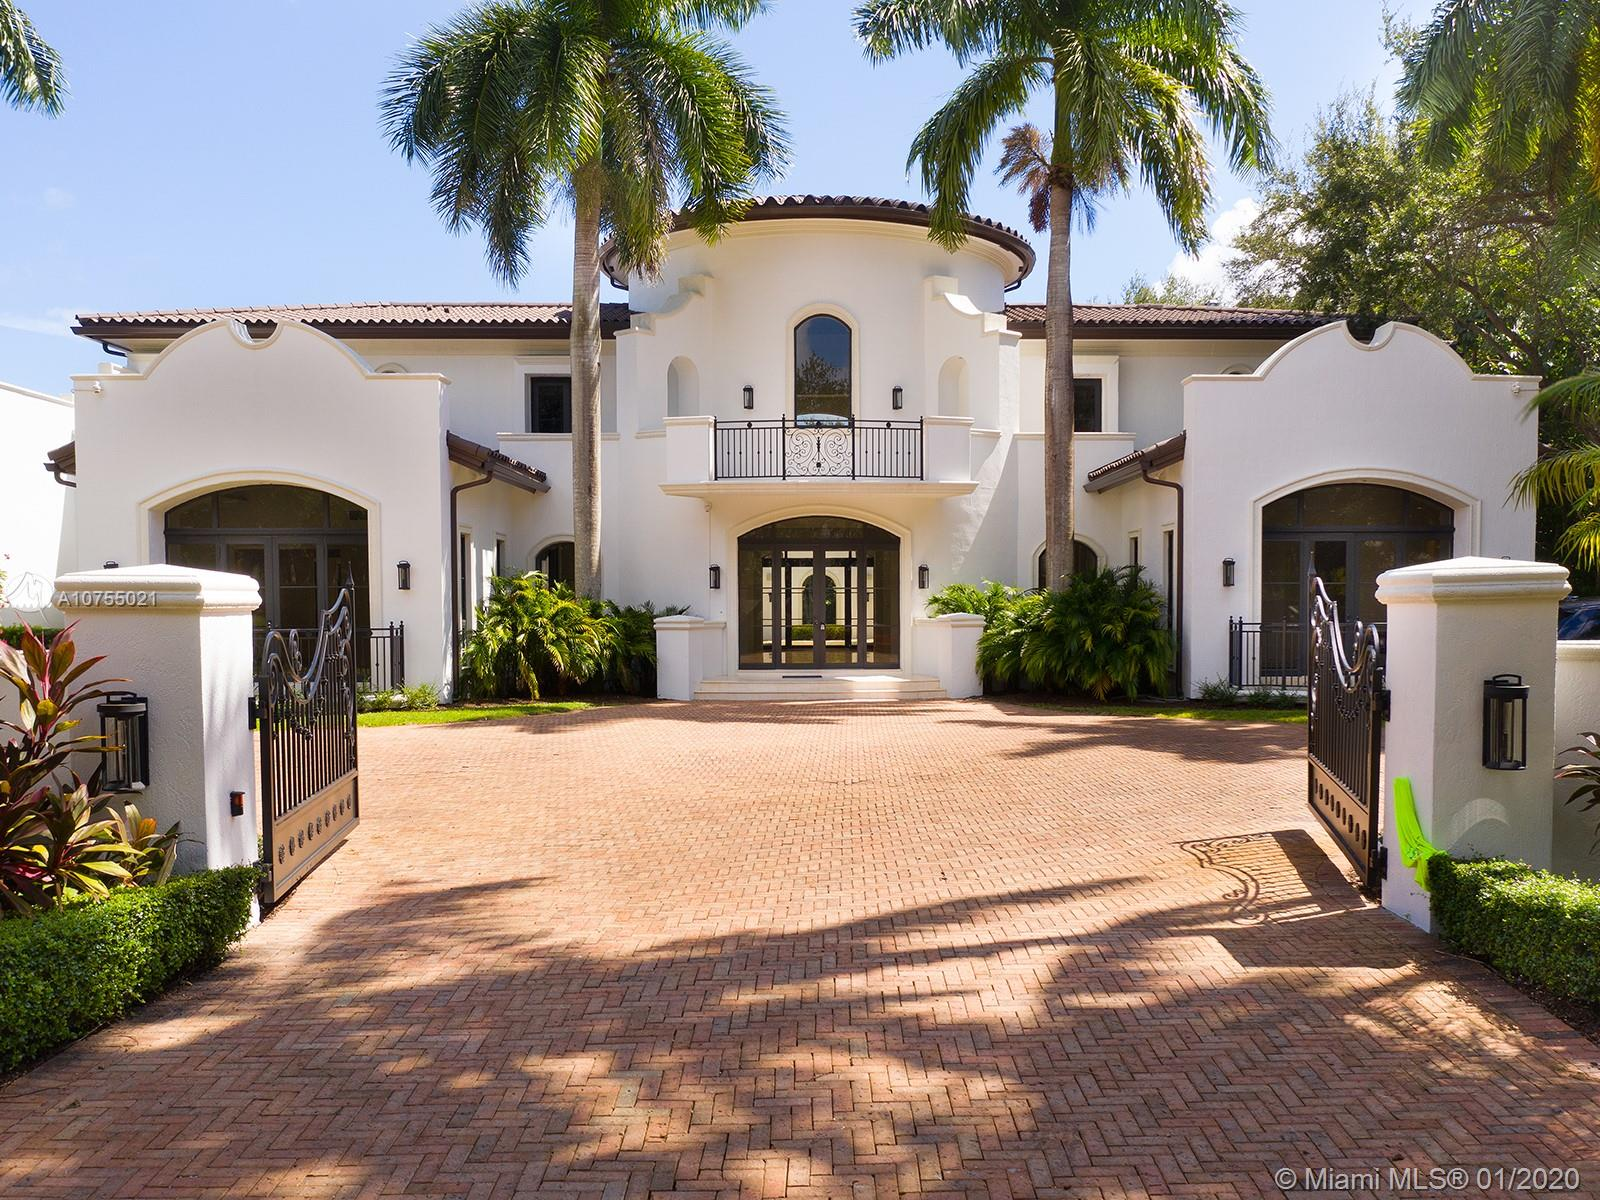 9401 S W 63rd Ct  For Sale A10755021, FL